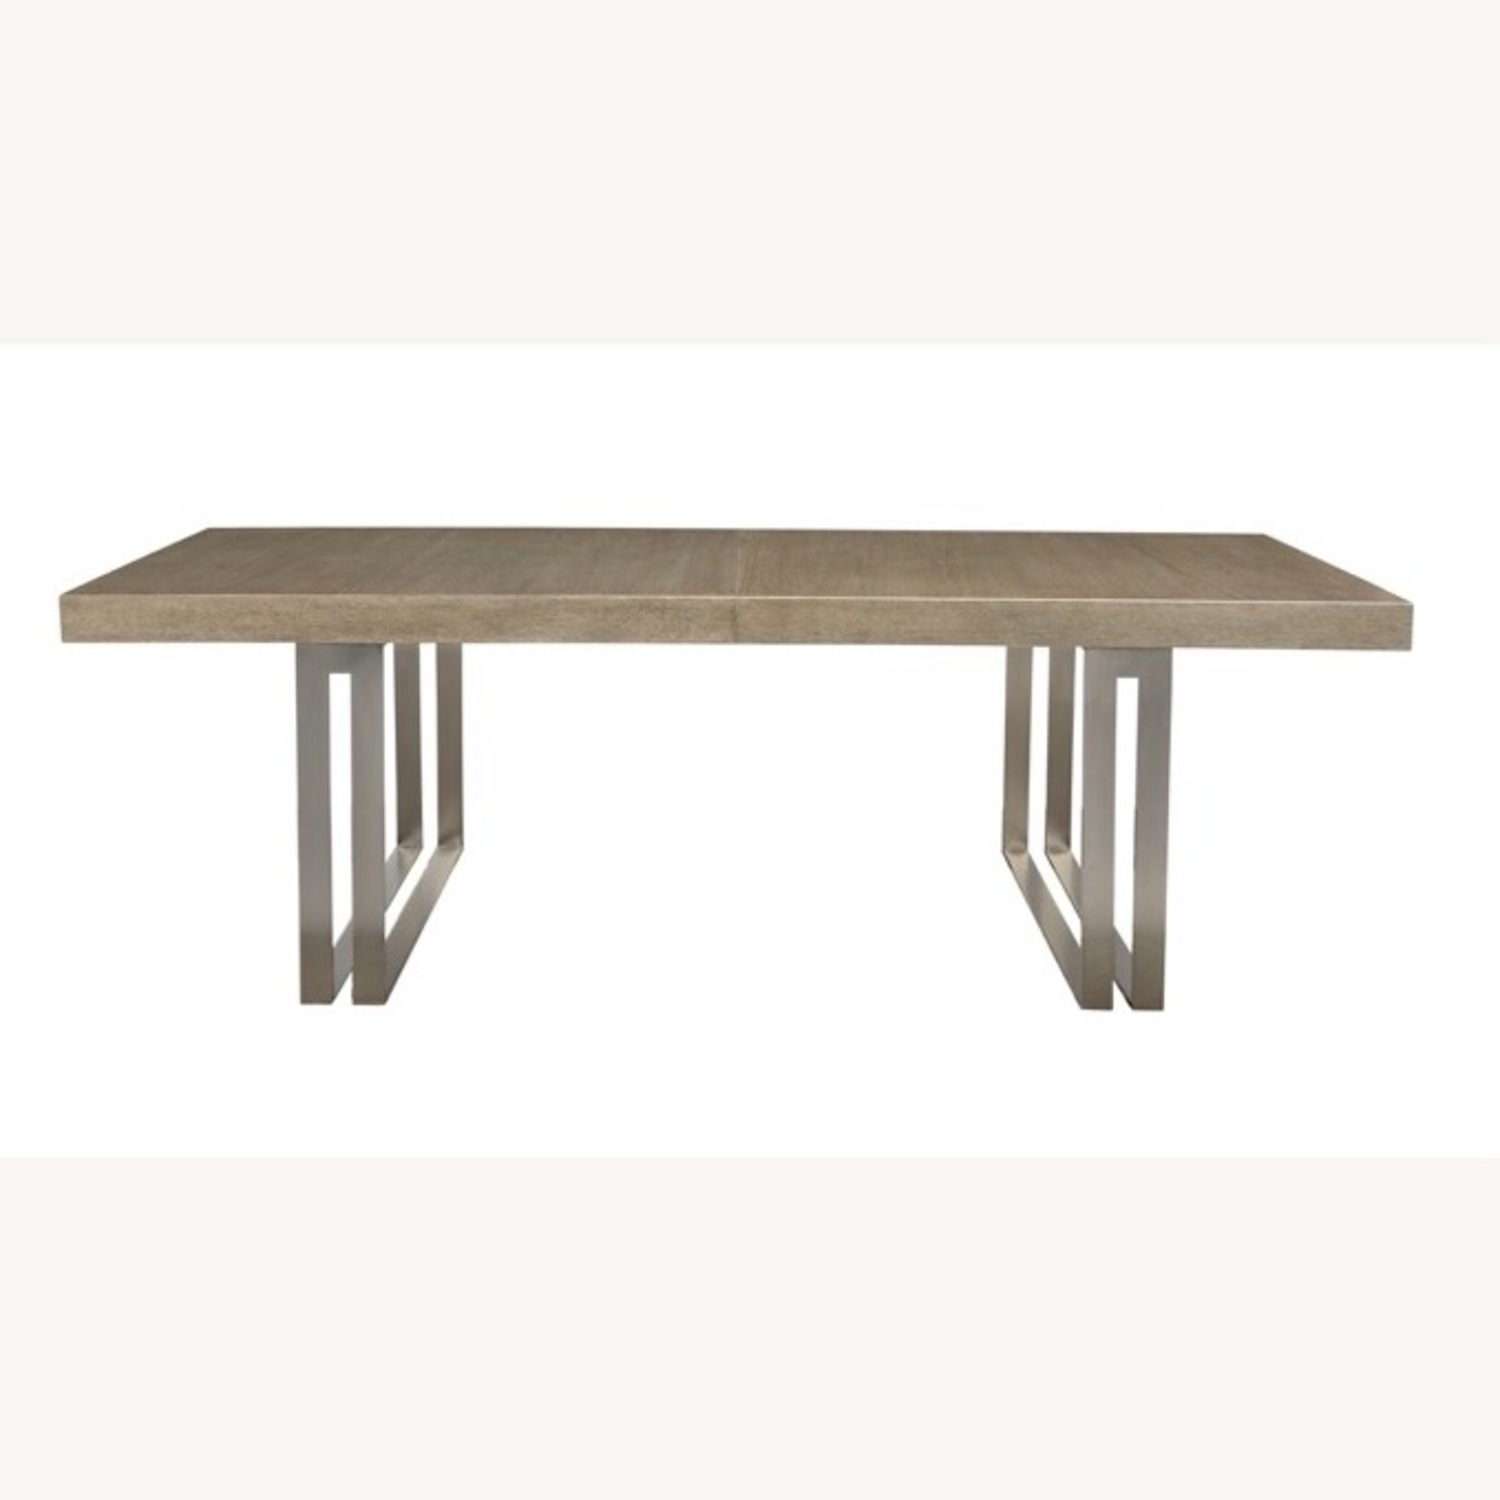 Bernhardt Designs Modern Expandable Table - image-7